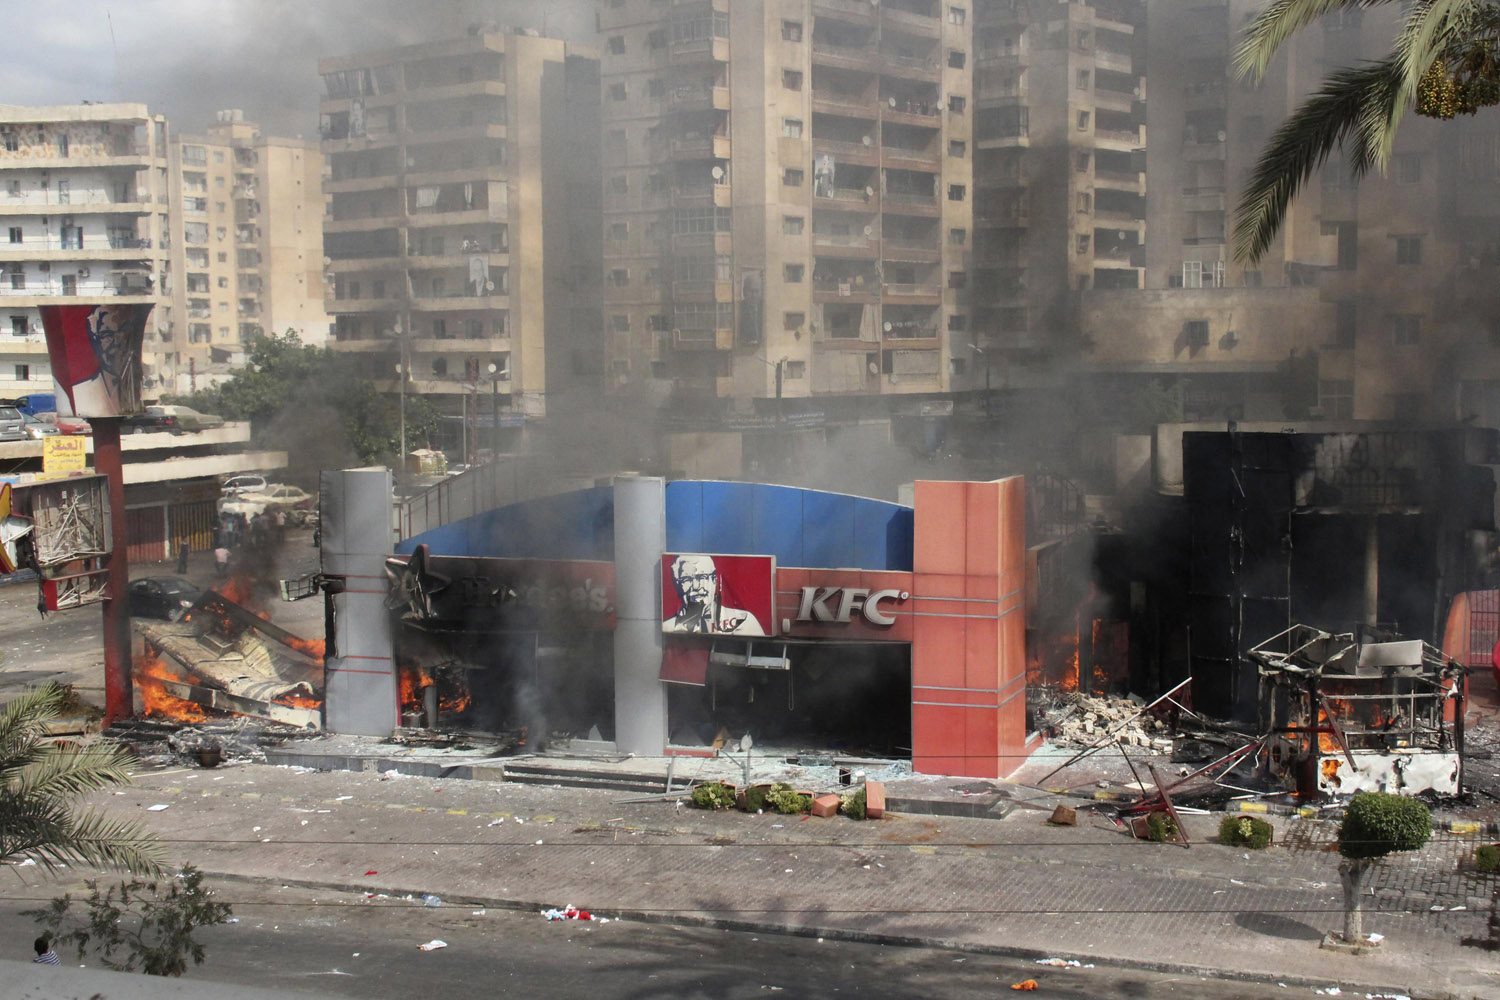 Sept. 14, 2012. Hardee's and Kentucky Fried Chicken restaurants are seen on fire after protesters destroyed and burnt them in Tripoli, northern Lebanon.